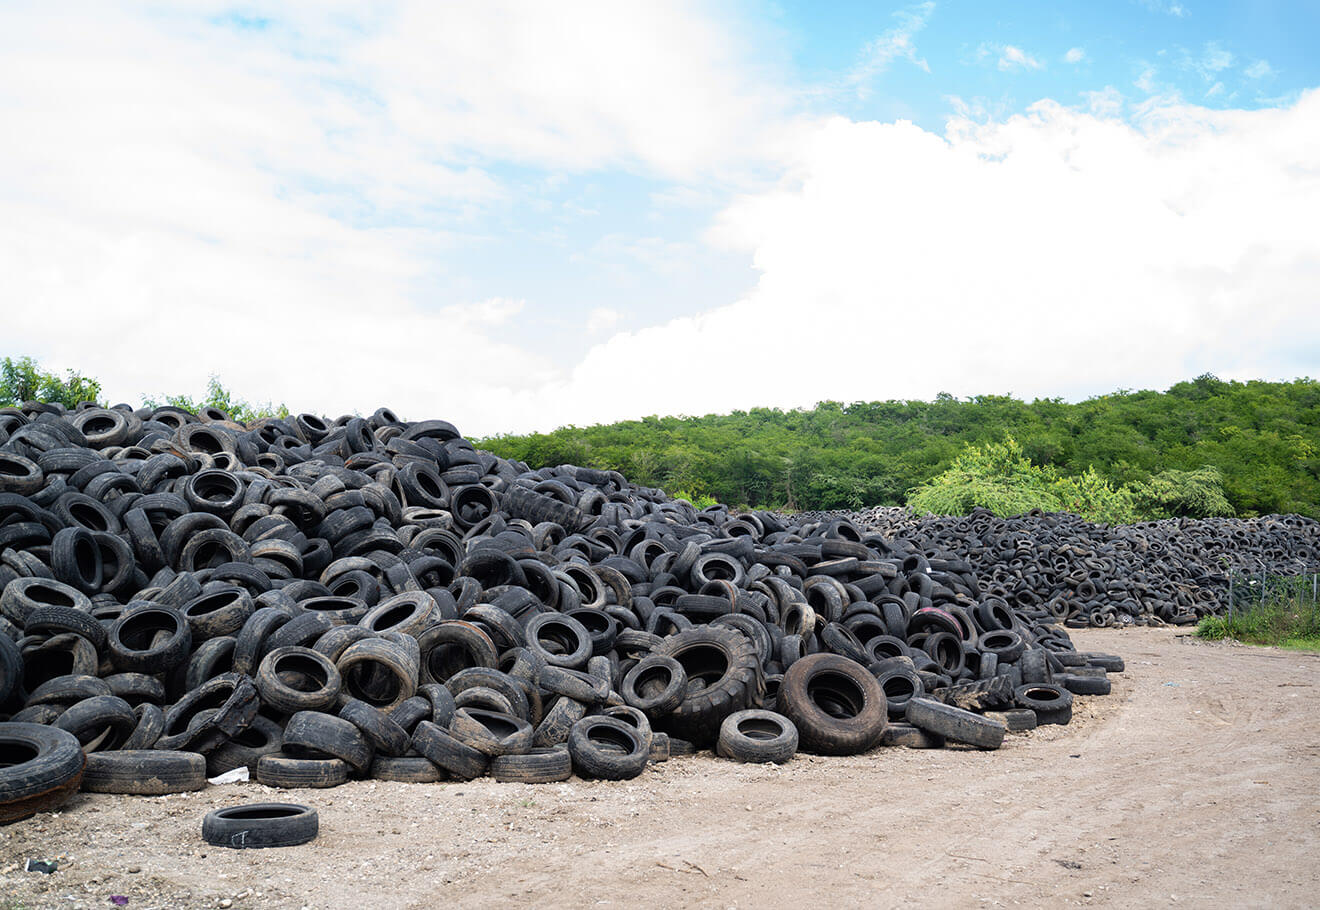 Pile of used tires in landfill